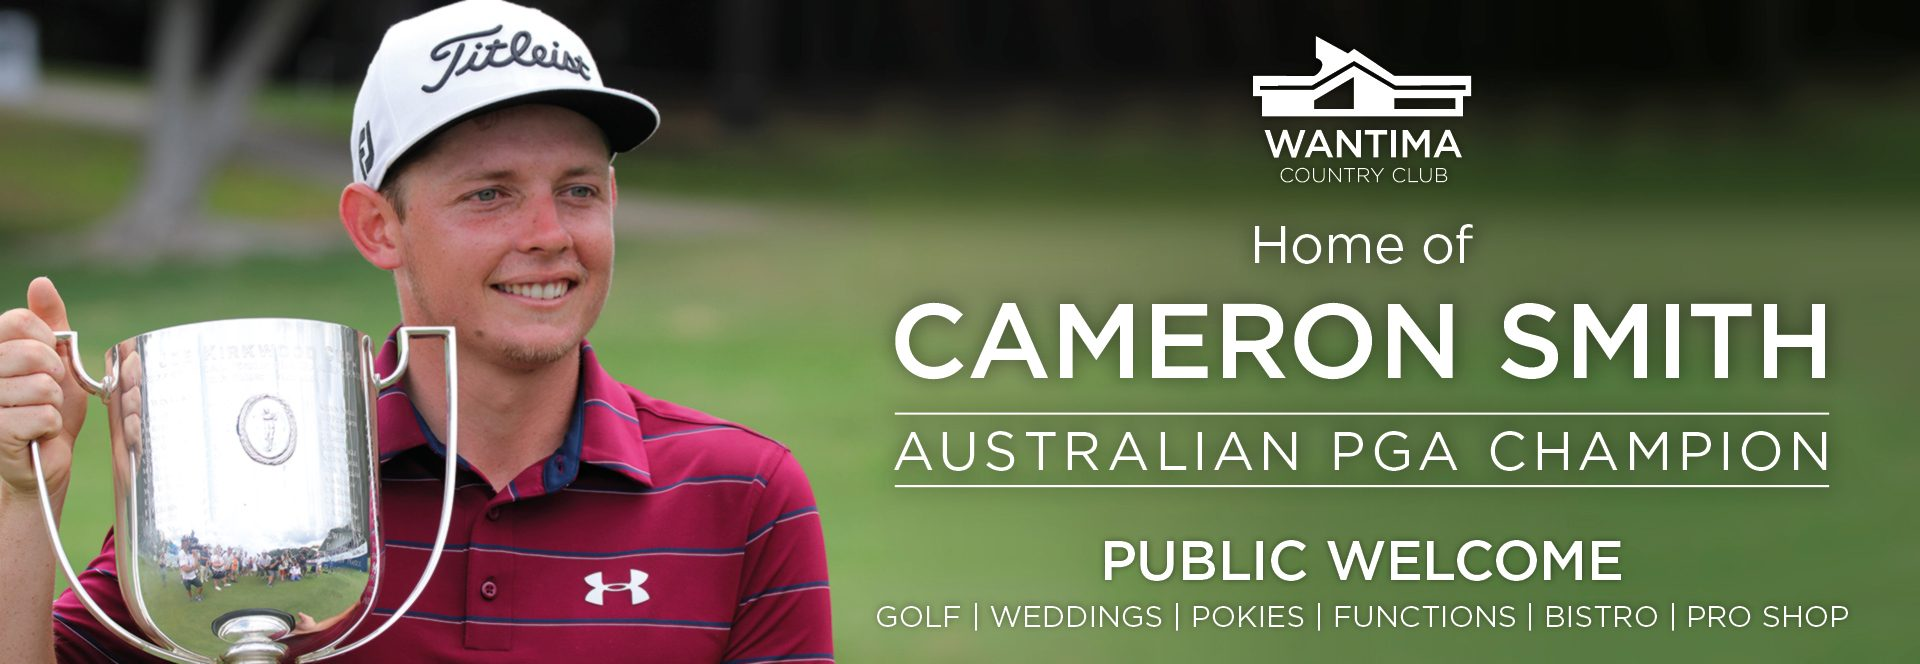 Cam Smith AUS PGA Champion